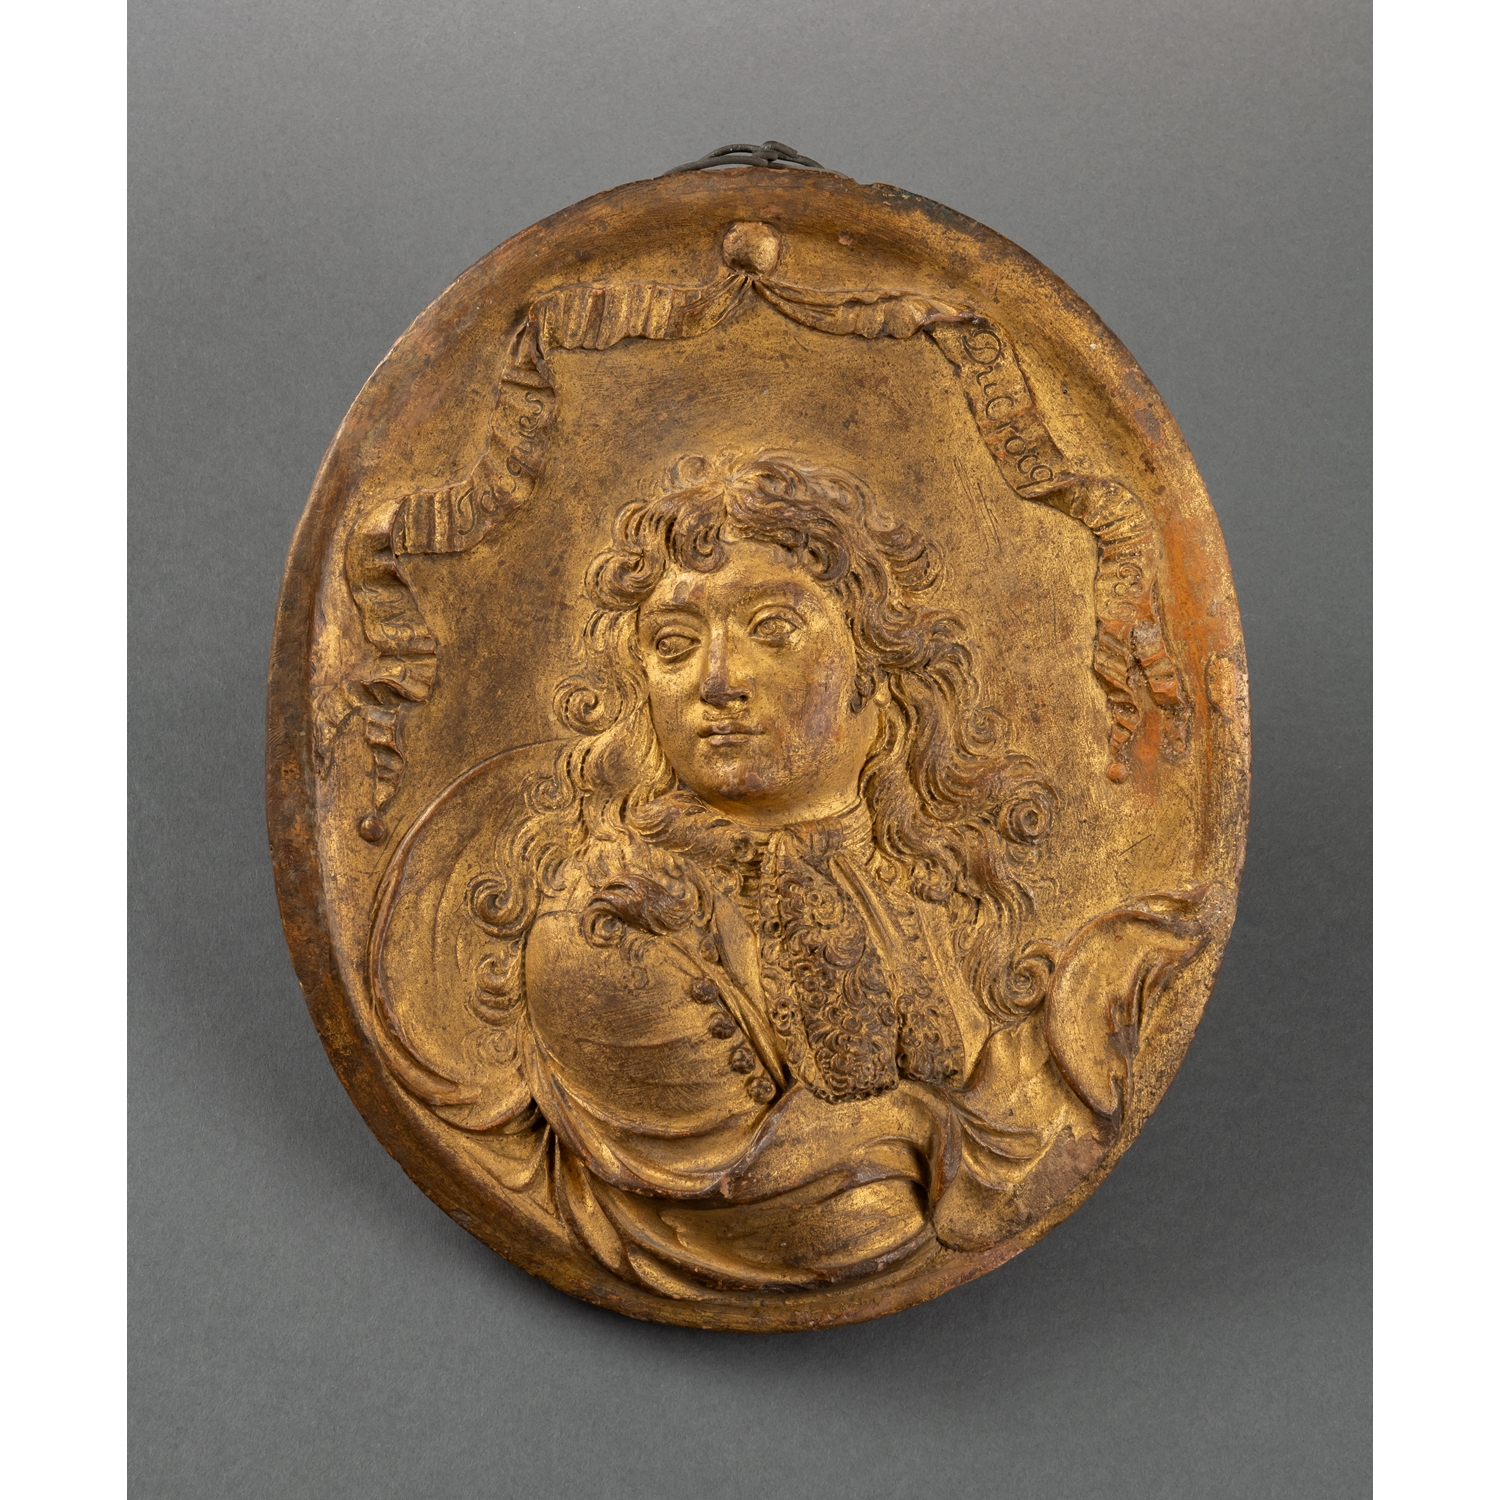 ROUNDEL WITH PORTRAIT OF MONSEIGNEUR JACQUES DUCROCQ DATED 1689